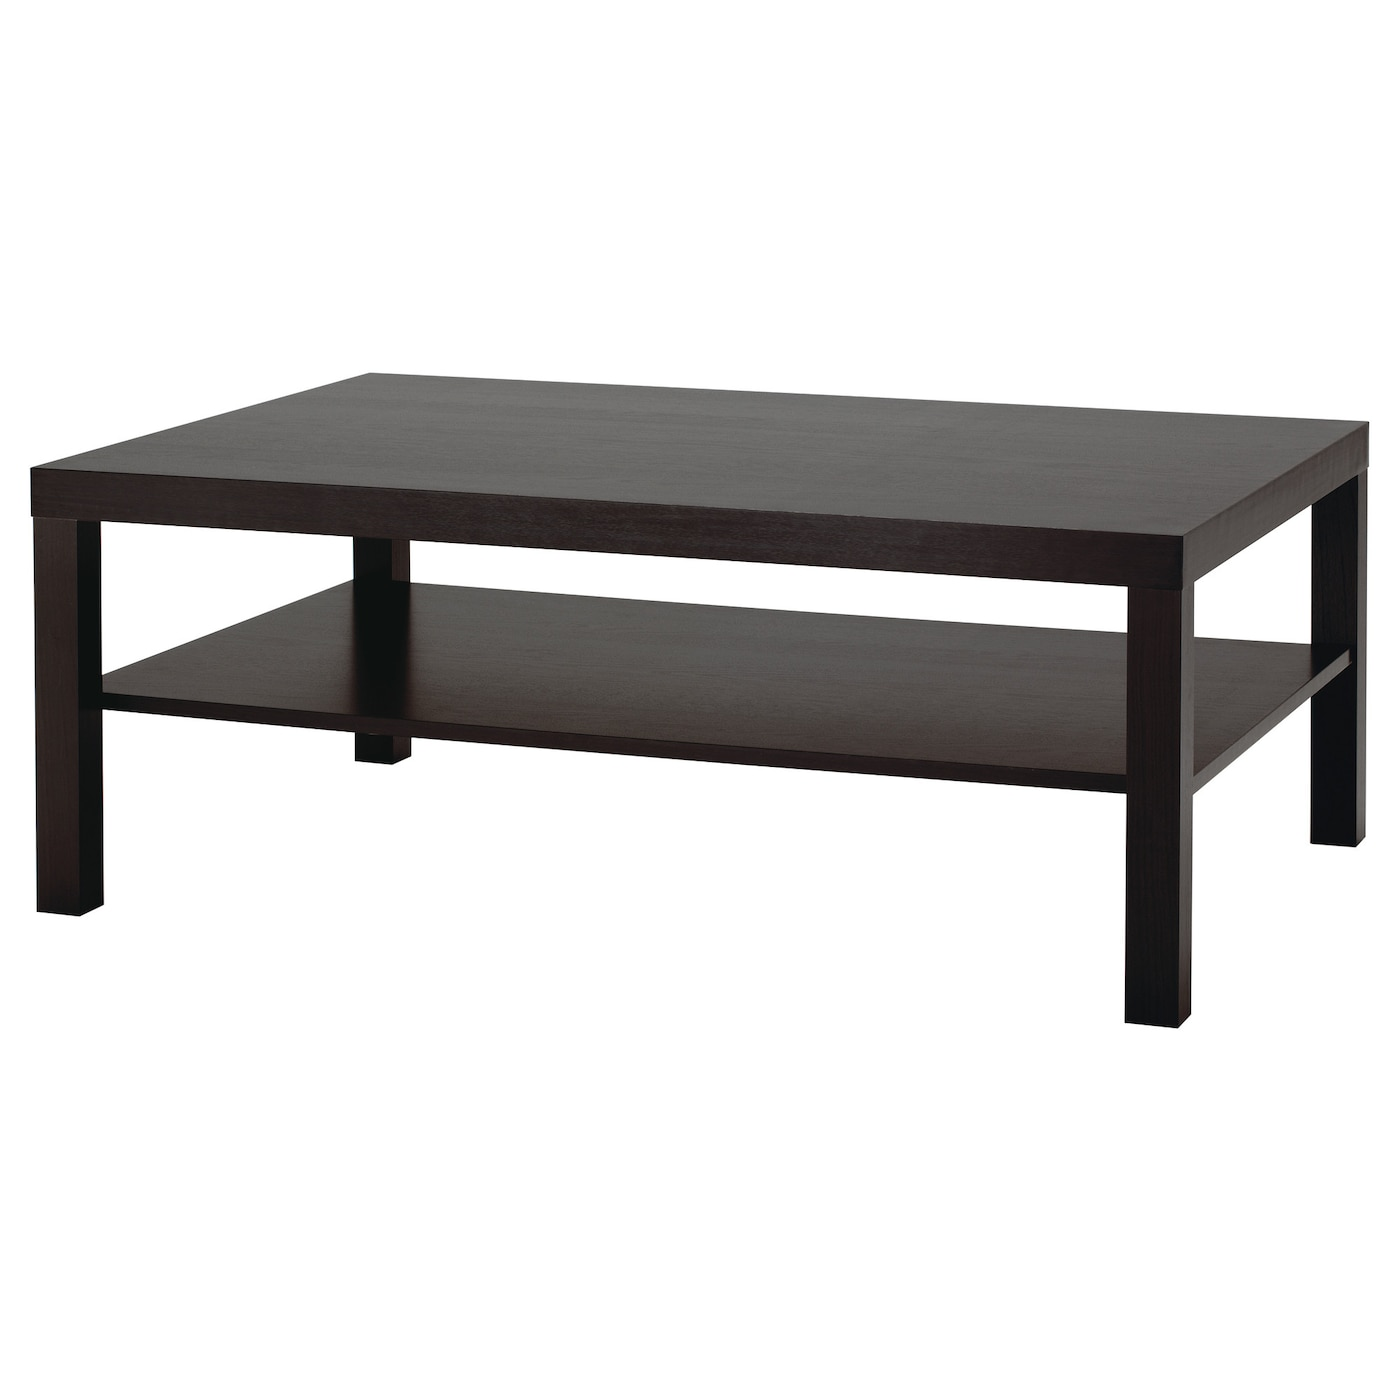 Lack Black Brown Coffee Table 118x78